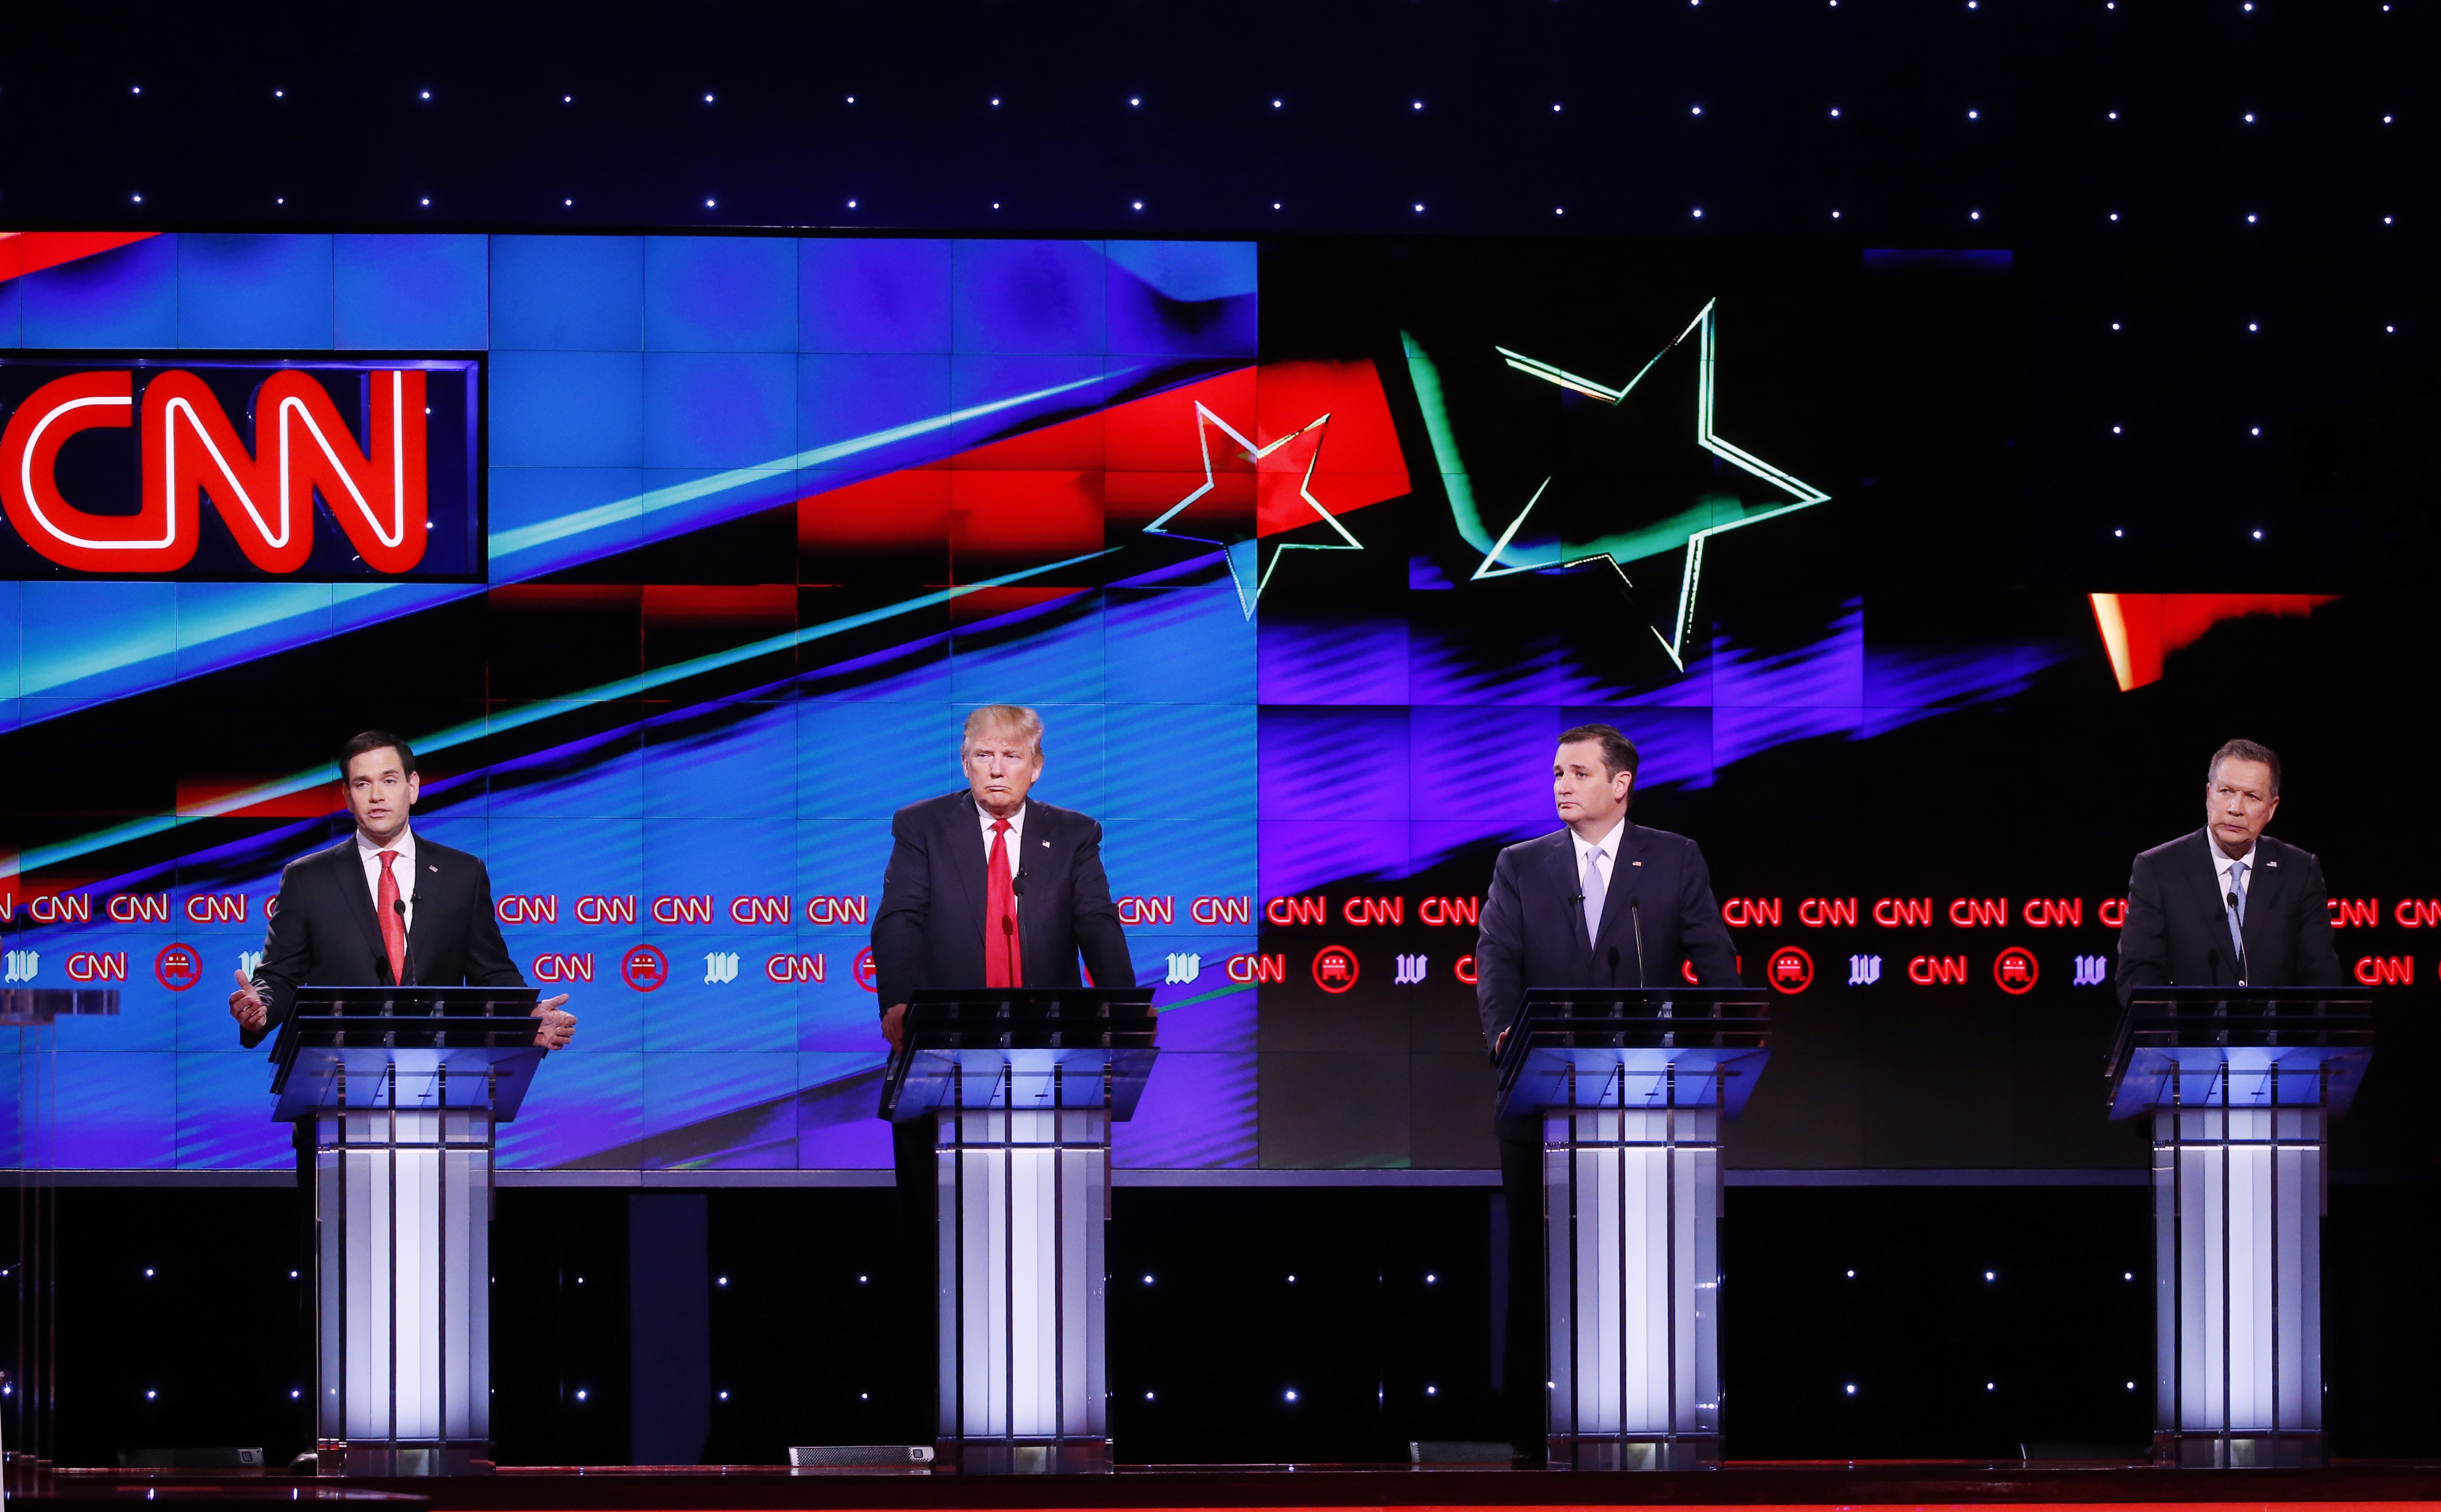 Republican presidential candidate, Sen. Marco Rubio, R-Fla., left, speaks, as Republican presidential candidates, businessman Donald Trump, Sen. Ted Cruz, R-Texas,  and Ohio Gov. John Kasich, listen, during the Republican presidential debate sponsored by CNN, Salem Media Group and the Washington Times at the University of Miami, March 10, 2016, in Coral Gables, Fla.